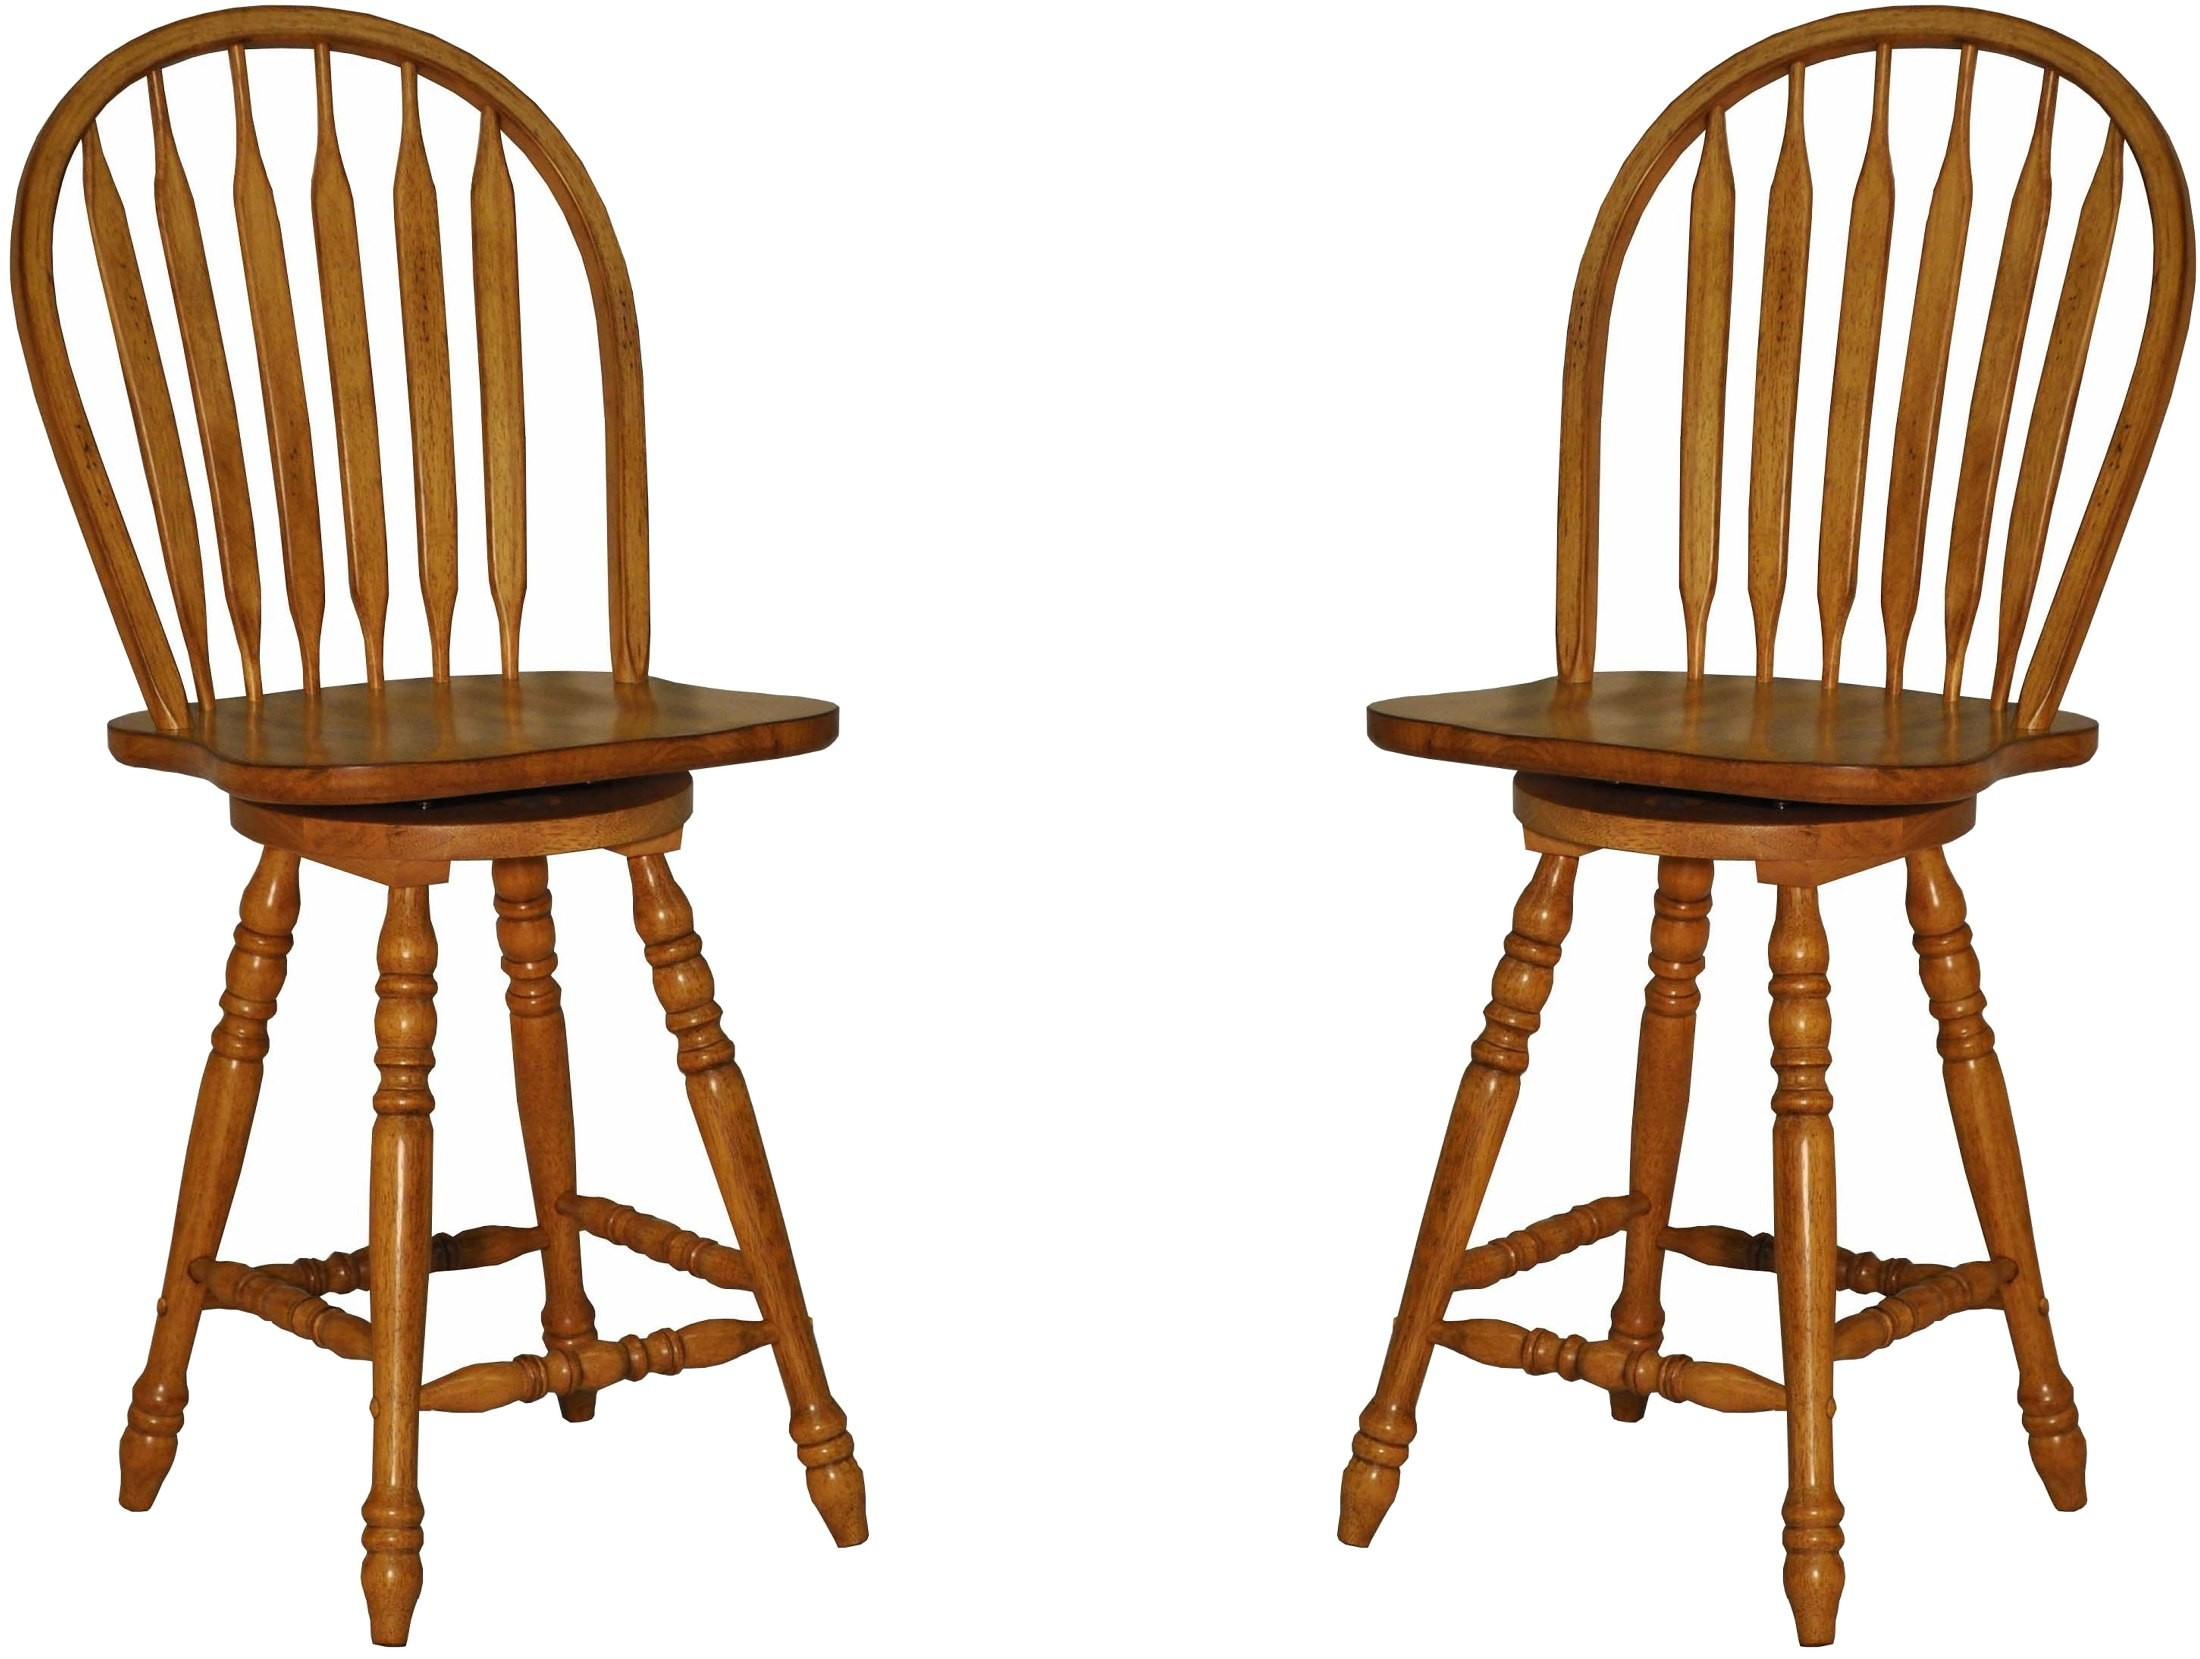 Rustic Bow Back Counter Stool Set Of 2 From Eci Furniture